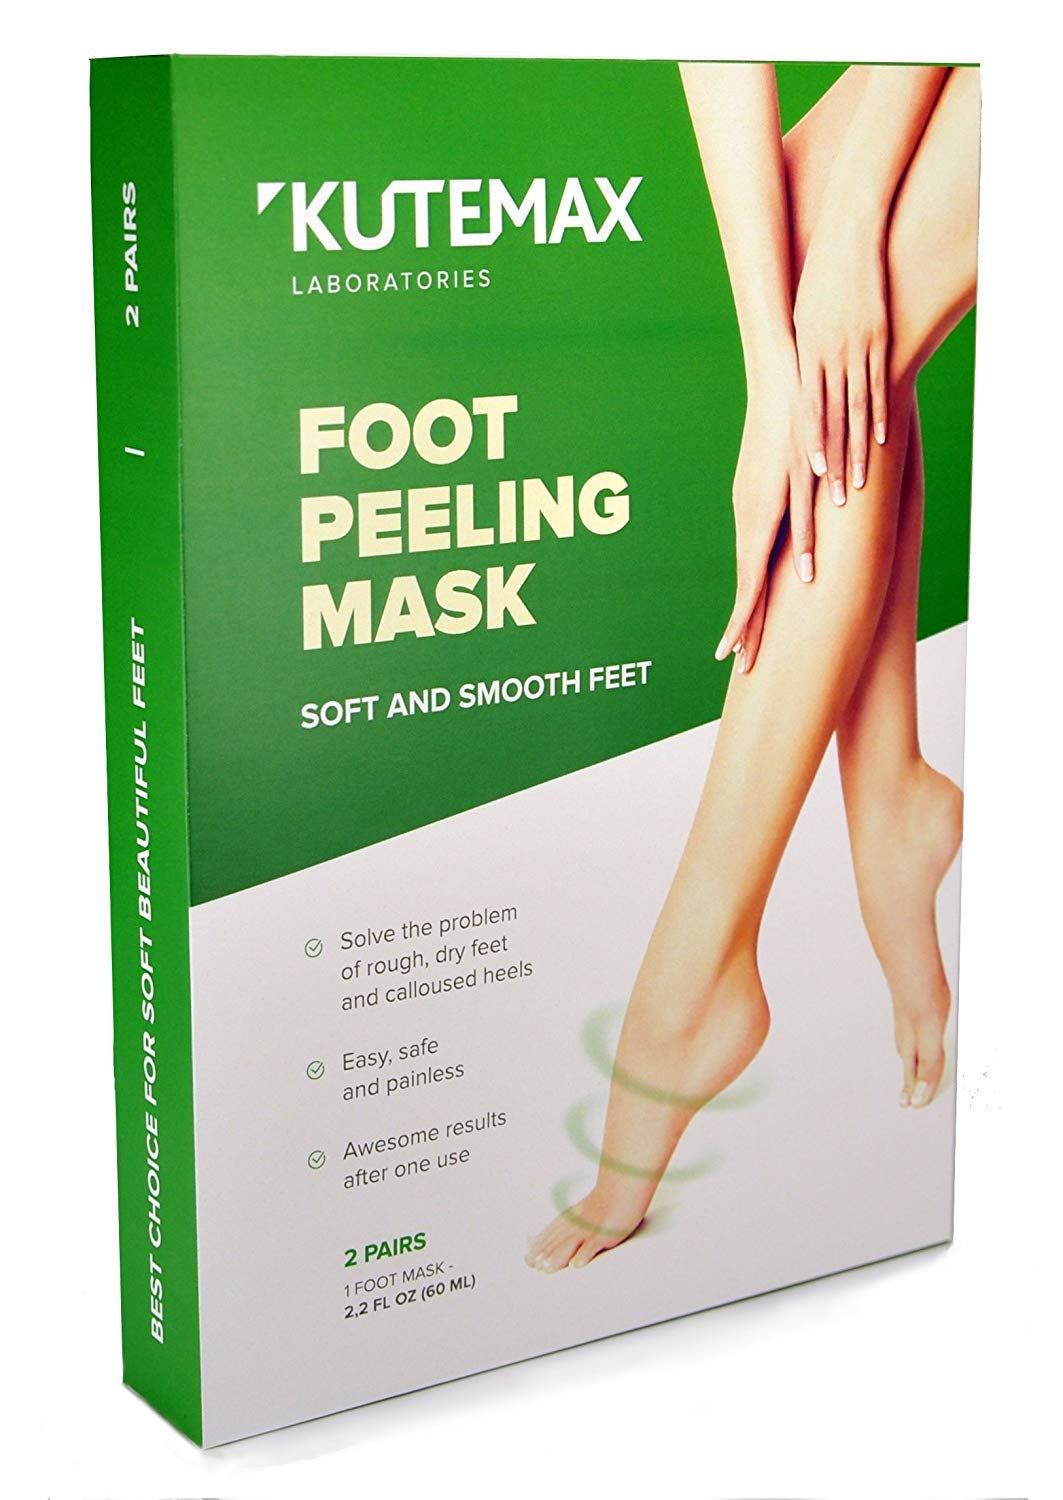 2 Pairs Foot Peel Mask Exfoliant for Soft Feet, Exfoliating Booties for Peeling Off Calluses & Dead Skin, For Men & Women